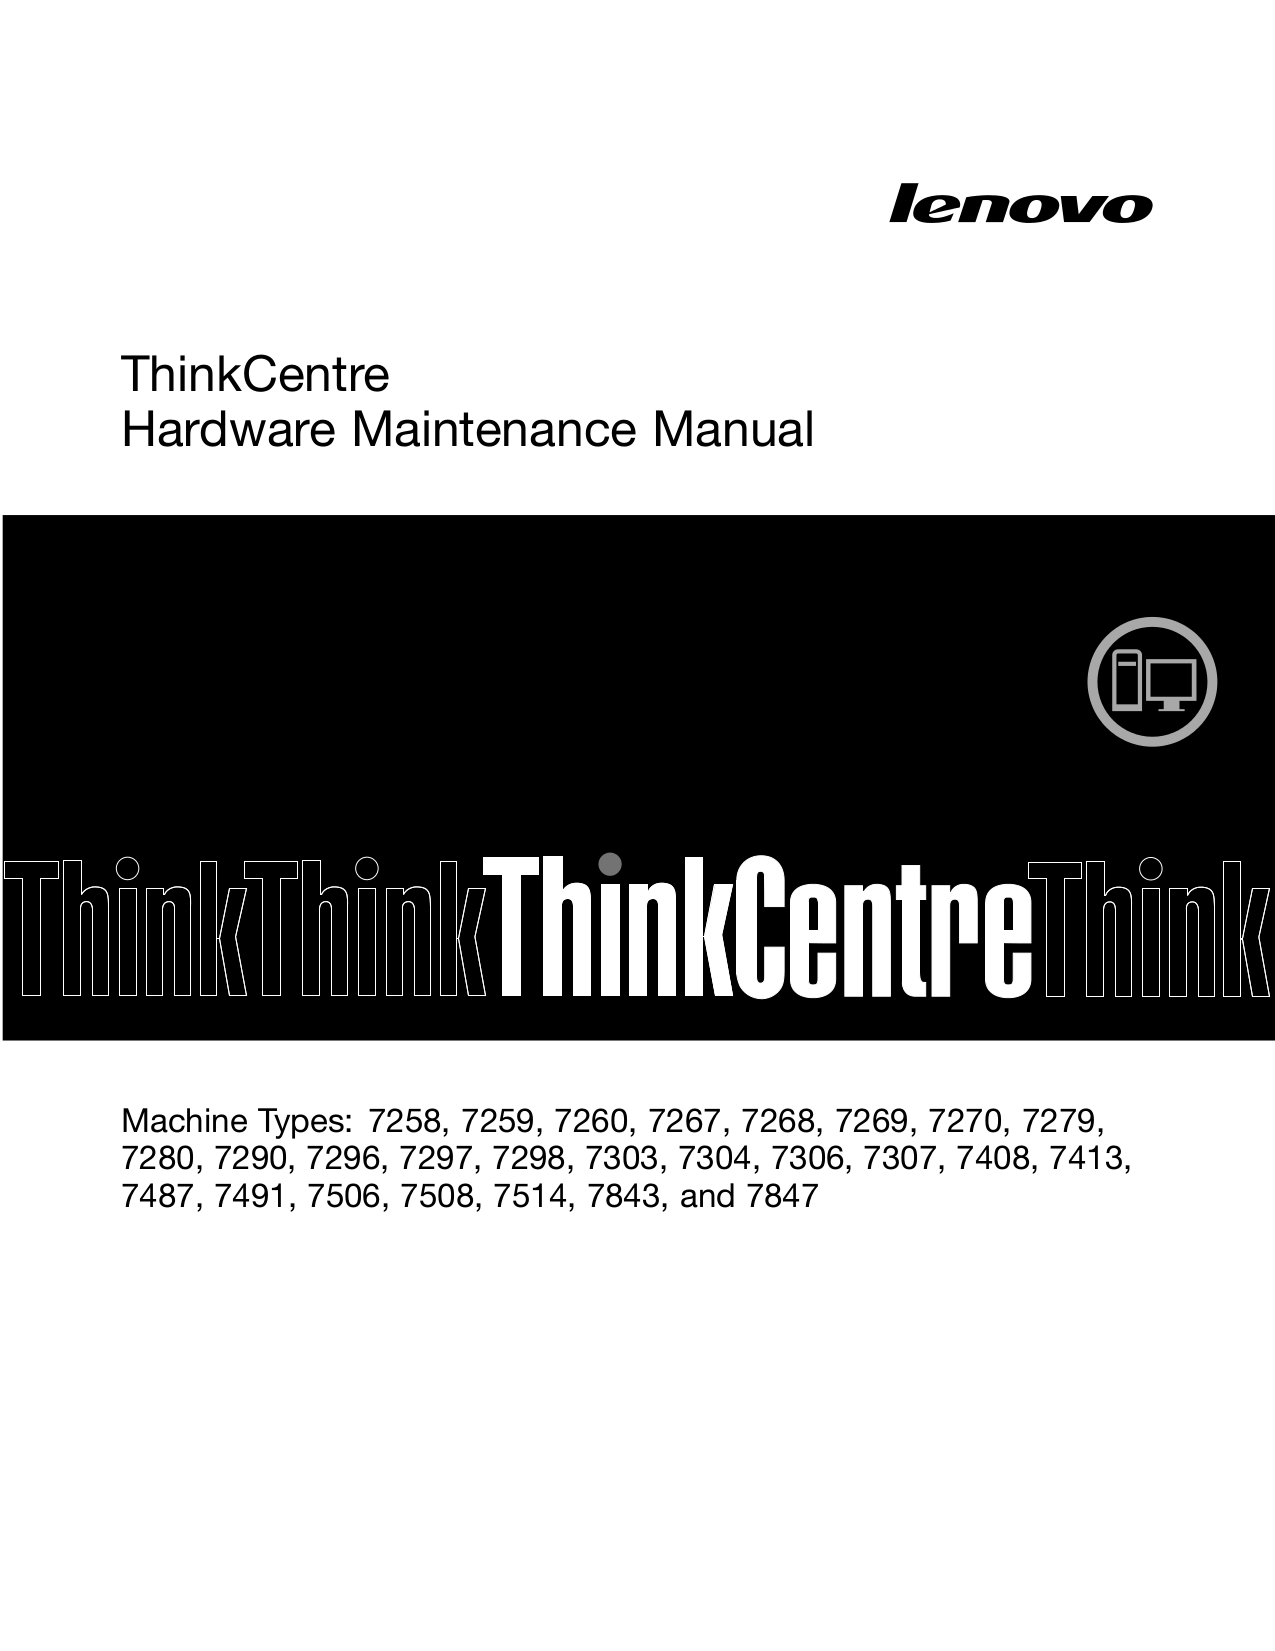 pdf for Lenovo Desktop ThinkCentre M58e 7259 manual